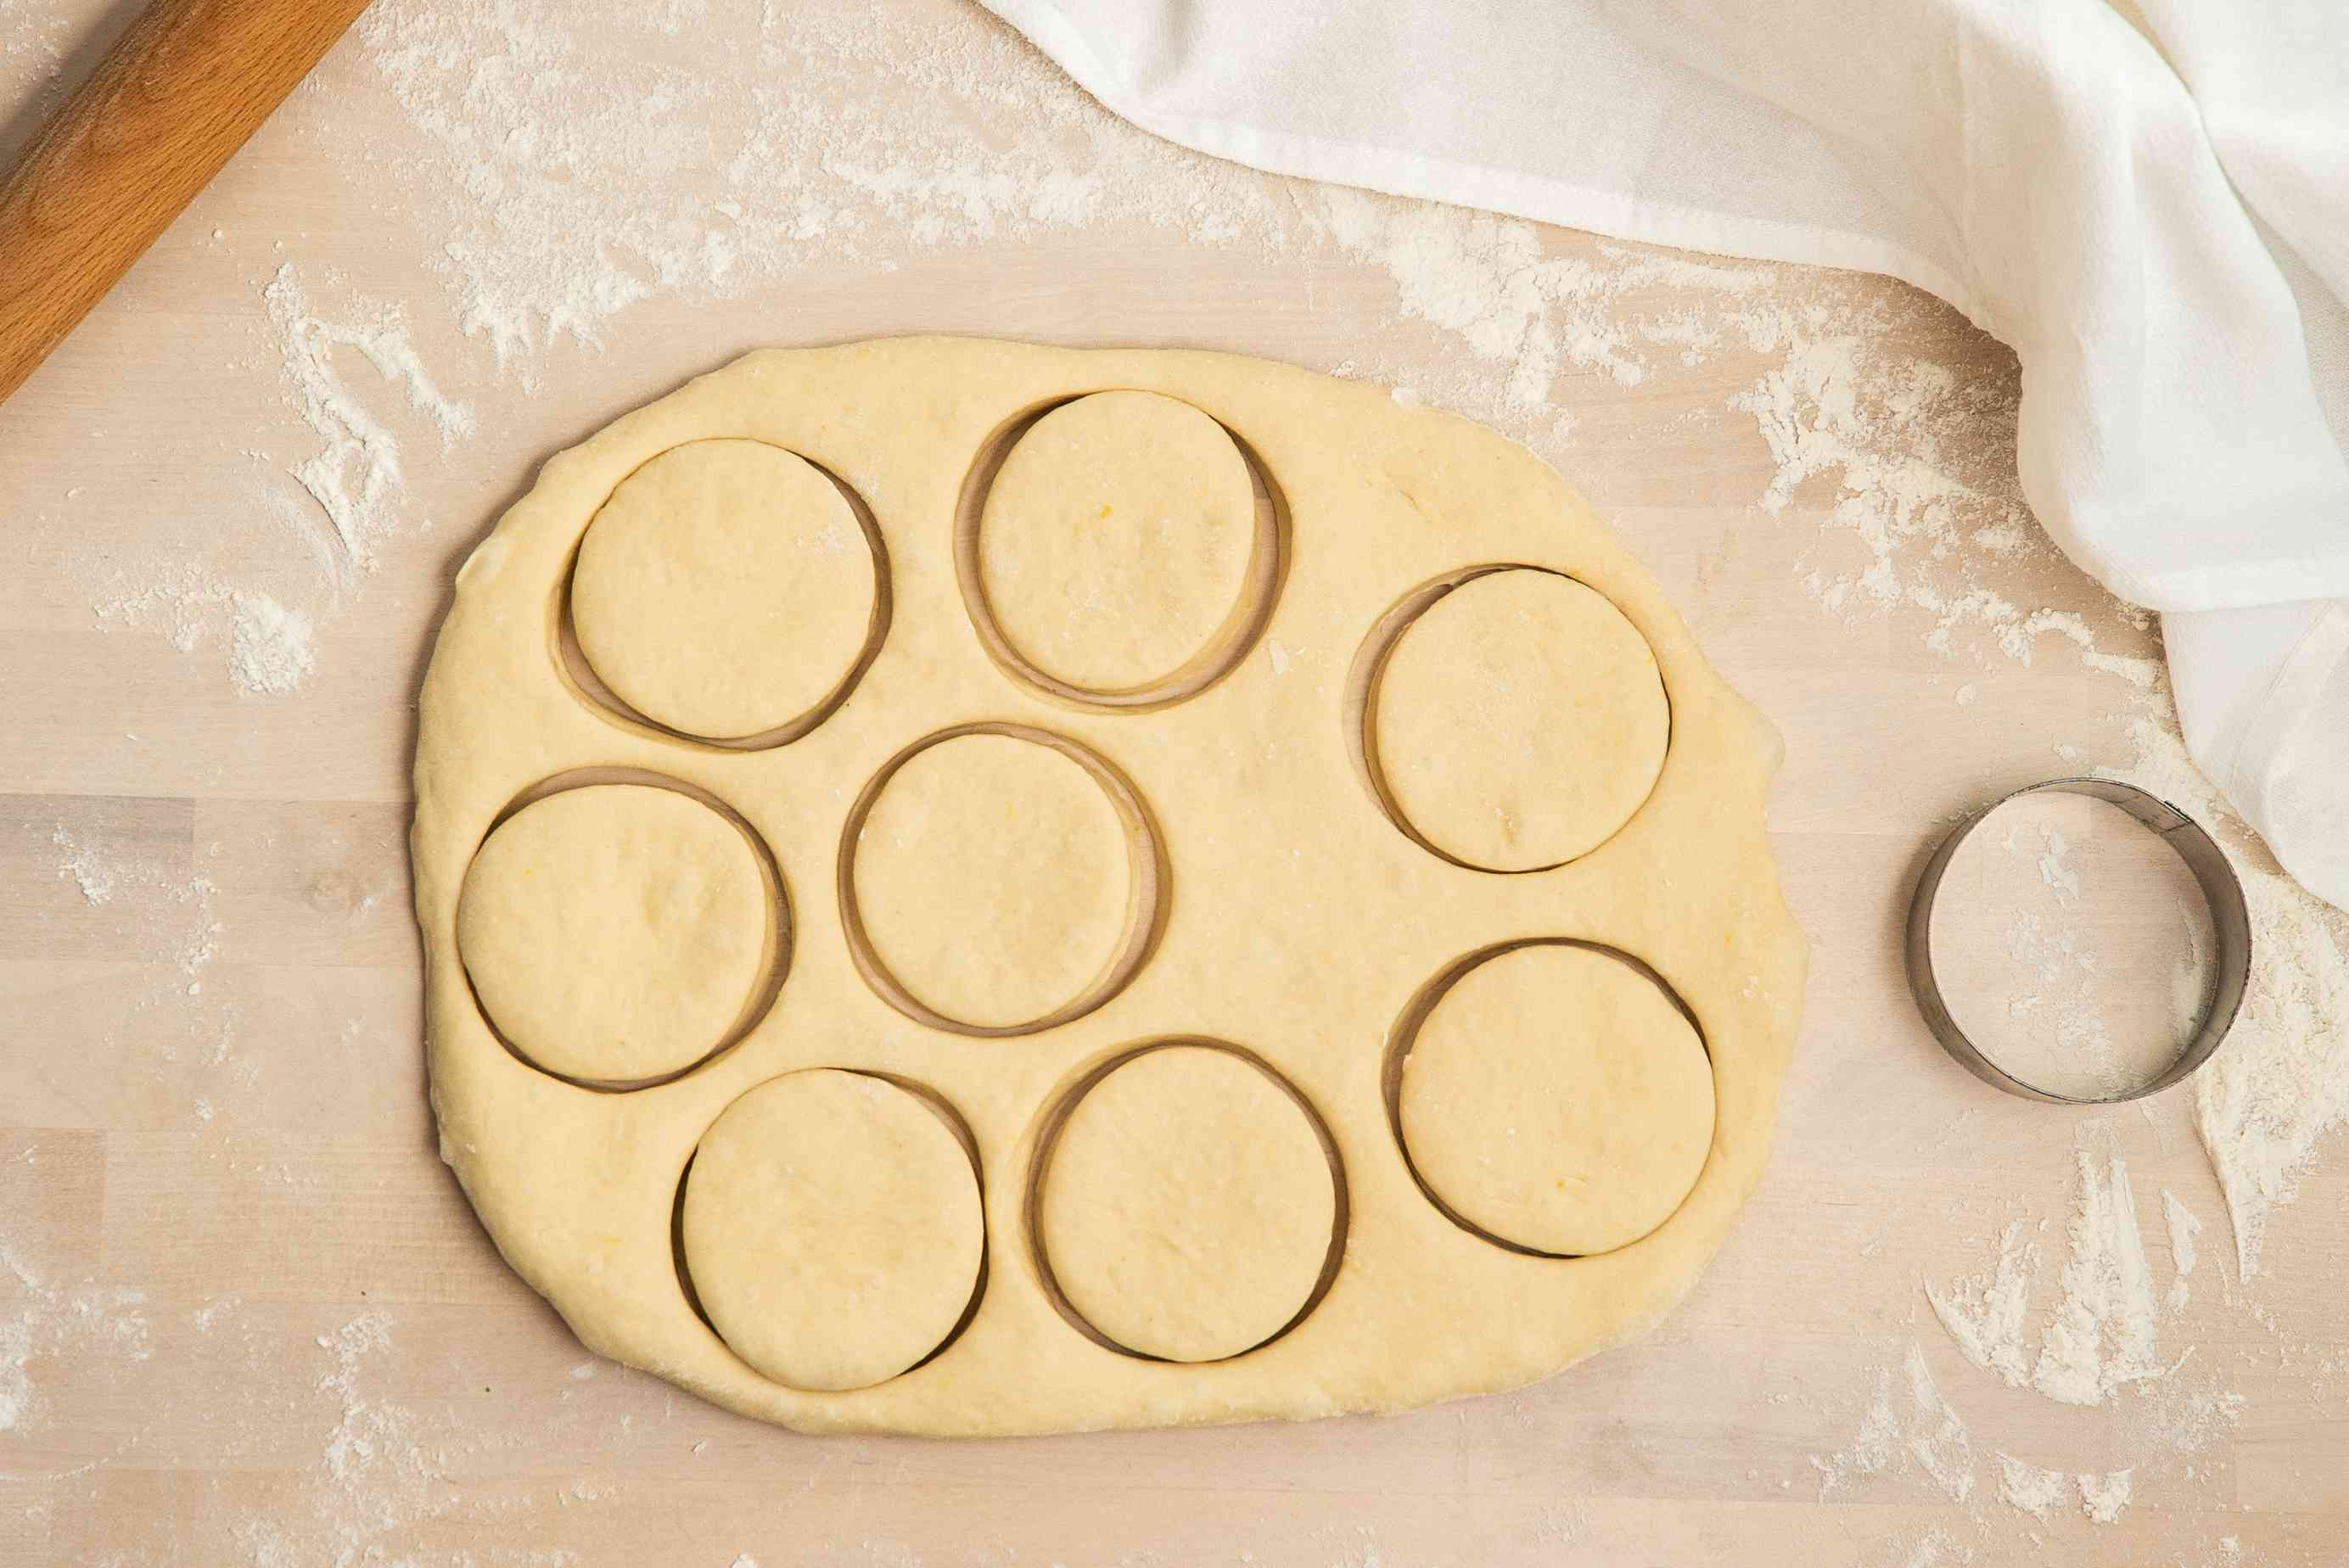 donuts cut out of dough with a donut cutter